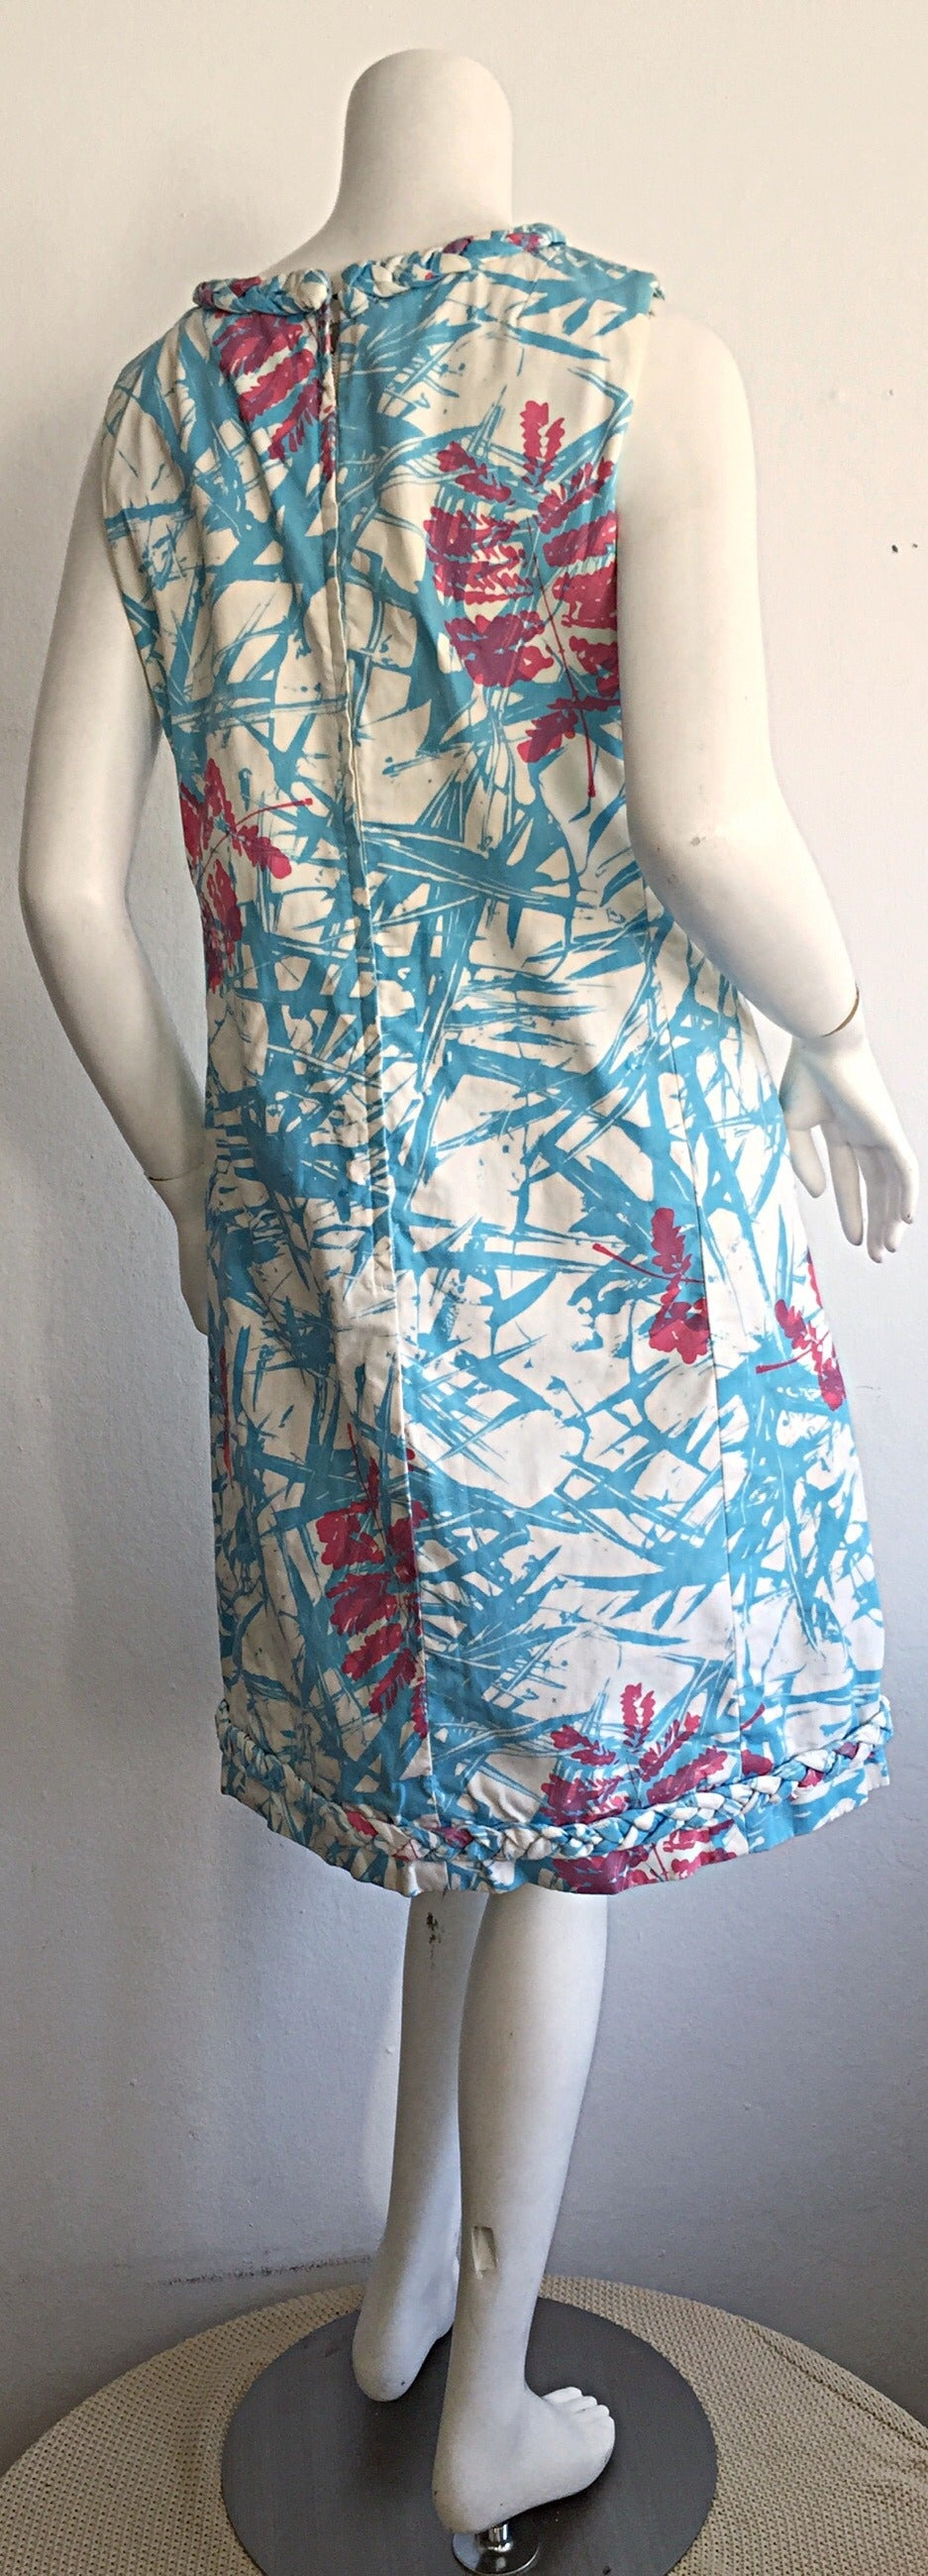 Rare 1960s Vintage ' THe Lilly ' by Lilly Pulitzer ' Thorn ' Cotton Shift Dress 4